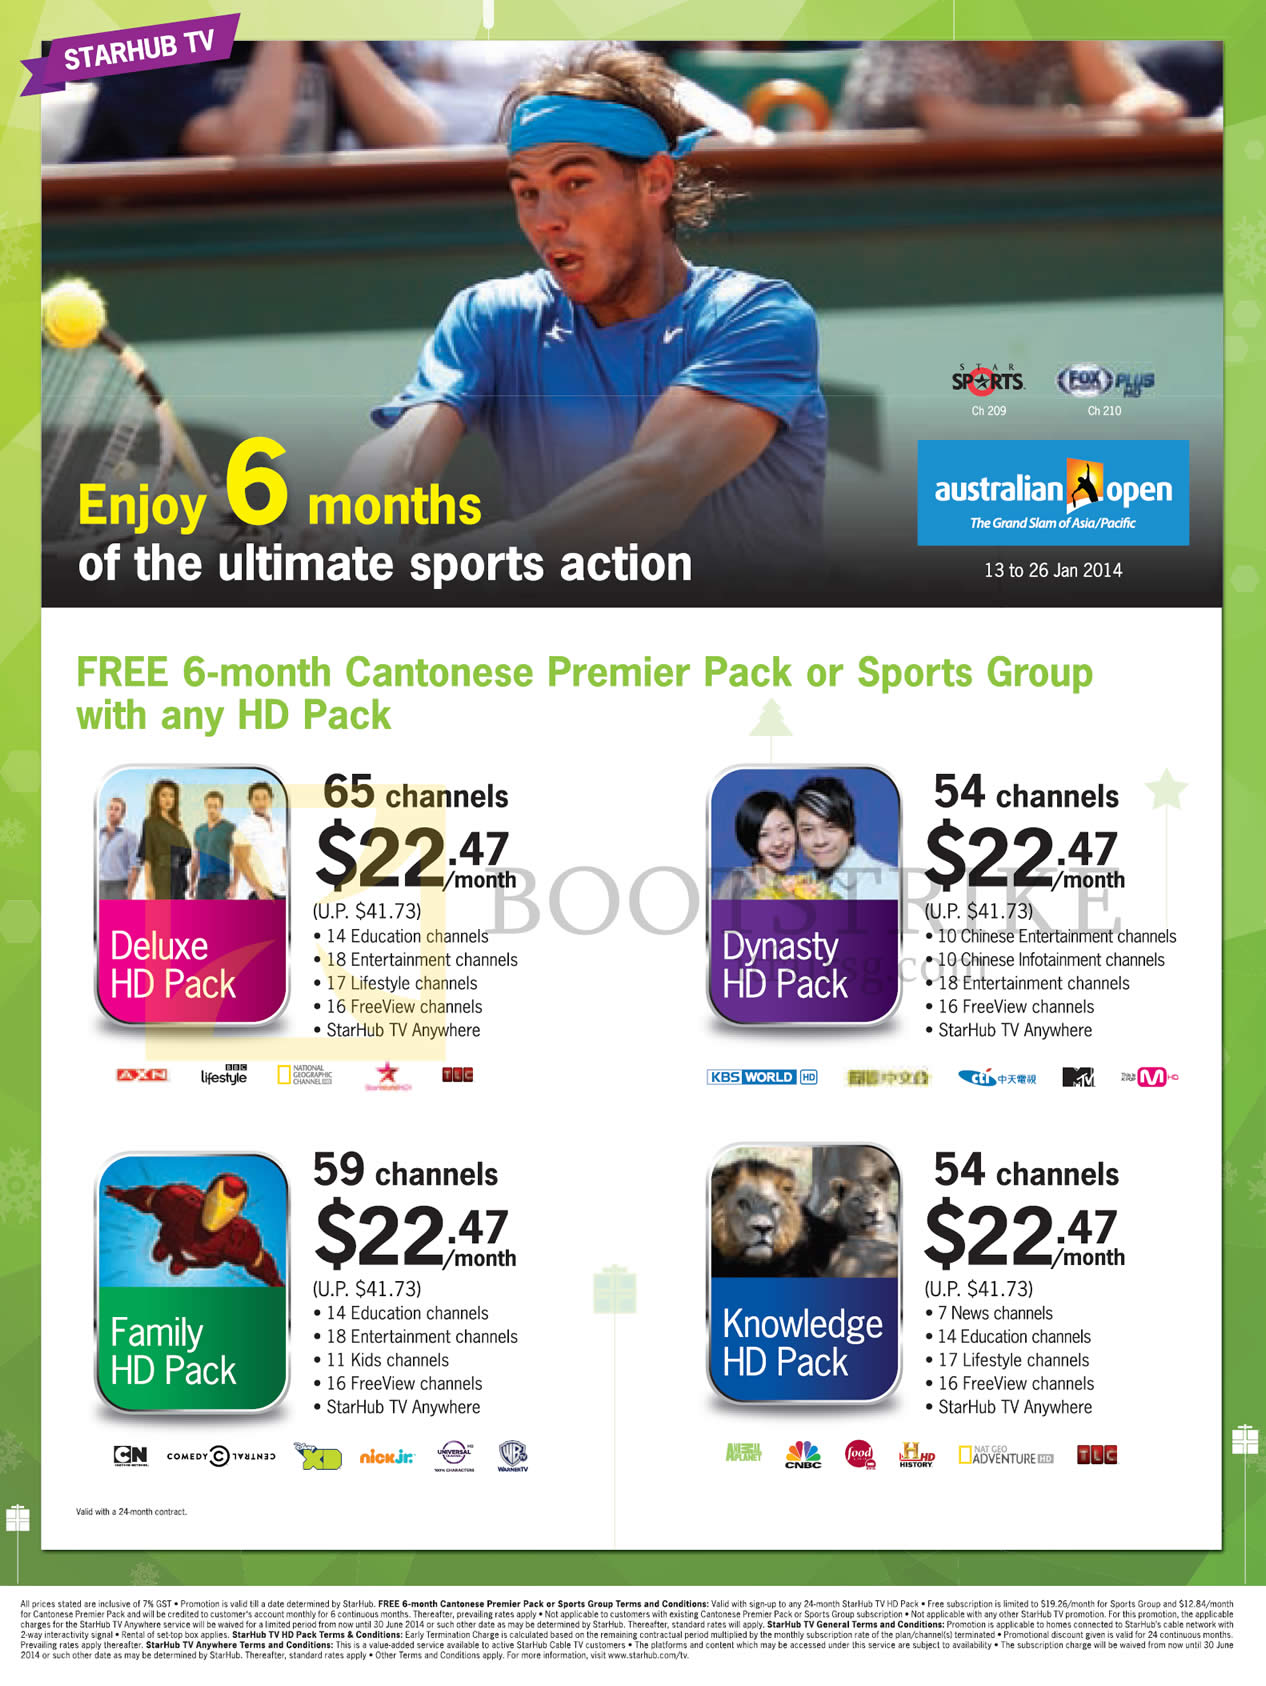 Starhub Cable Tv Free 6 Month Cantonese Premier Pack Or